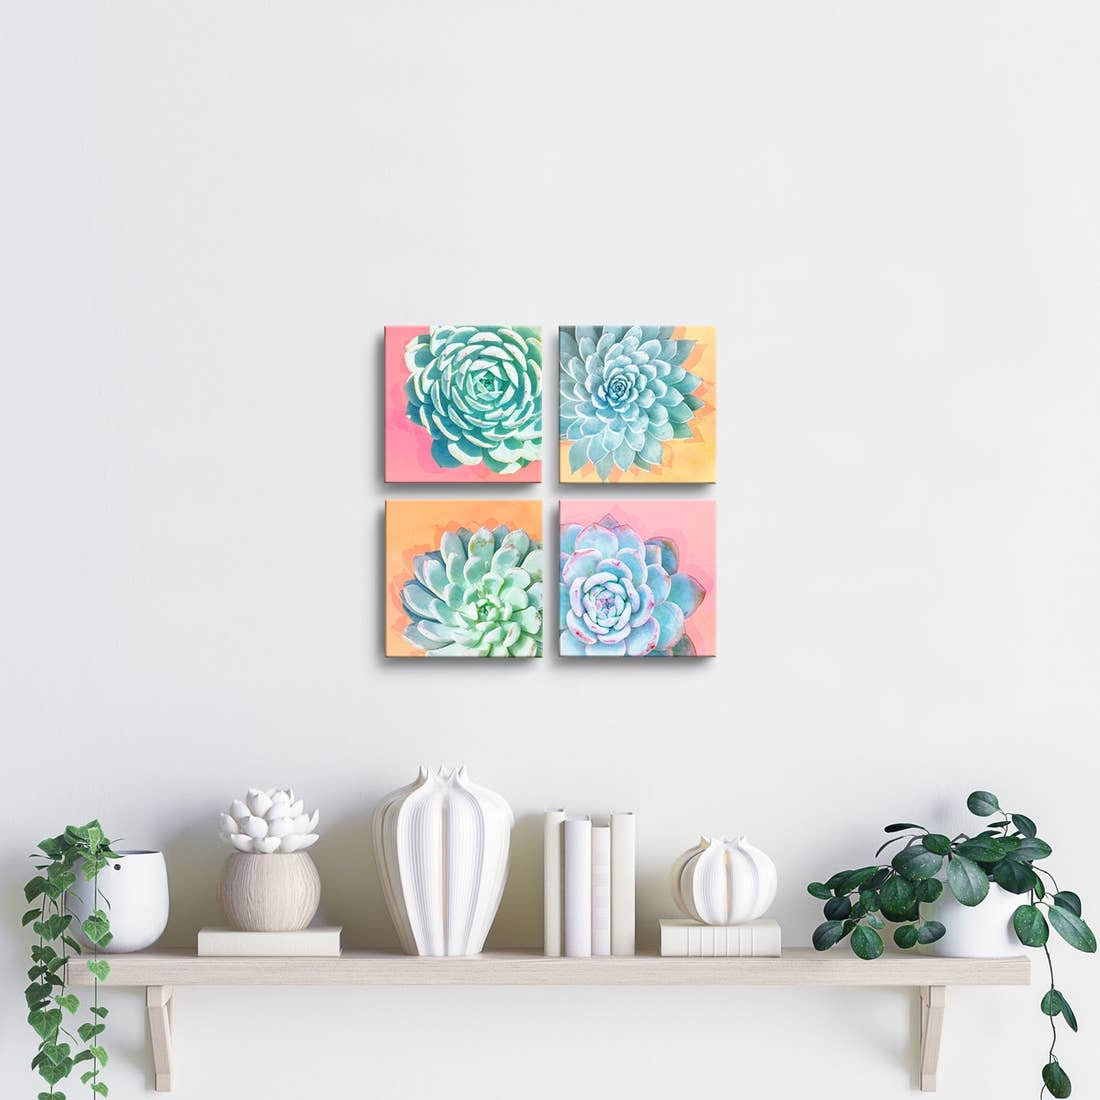 'Awakened' Wrapped Canvas Succulent Wall